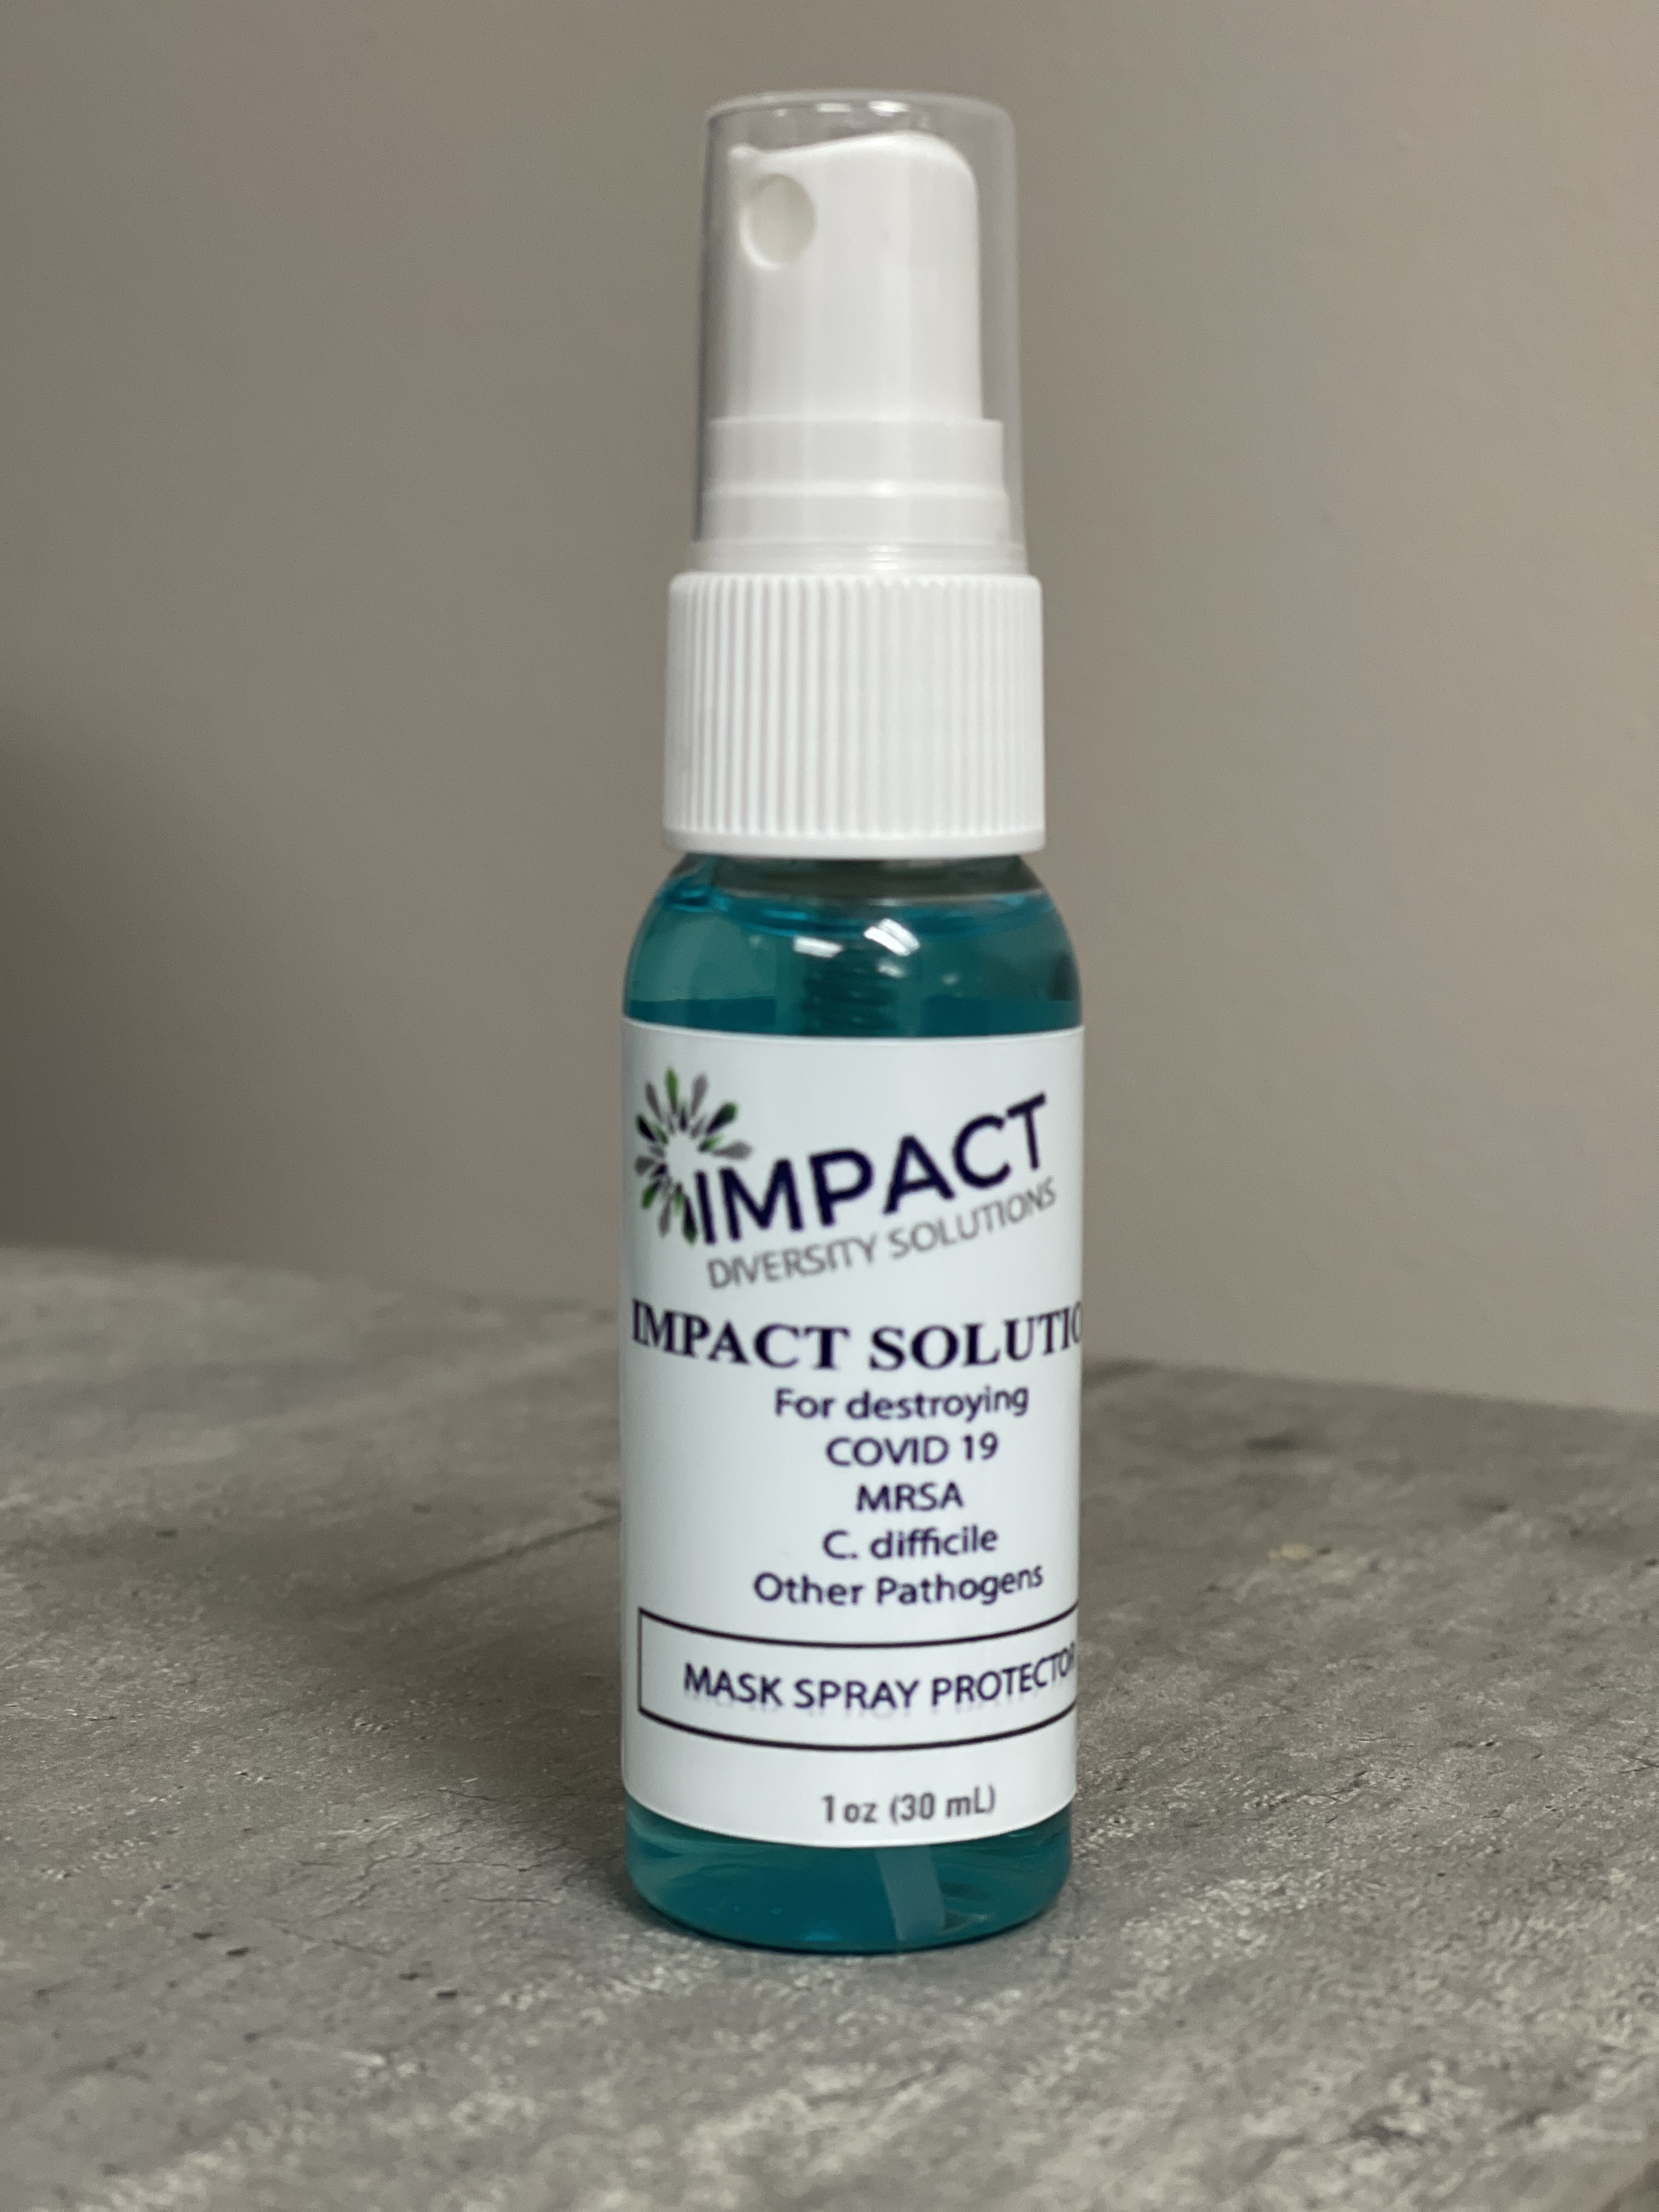 IDS Mask Spray Protector and Sanitizer/Infection Prevention